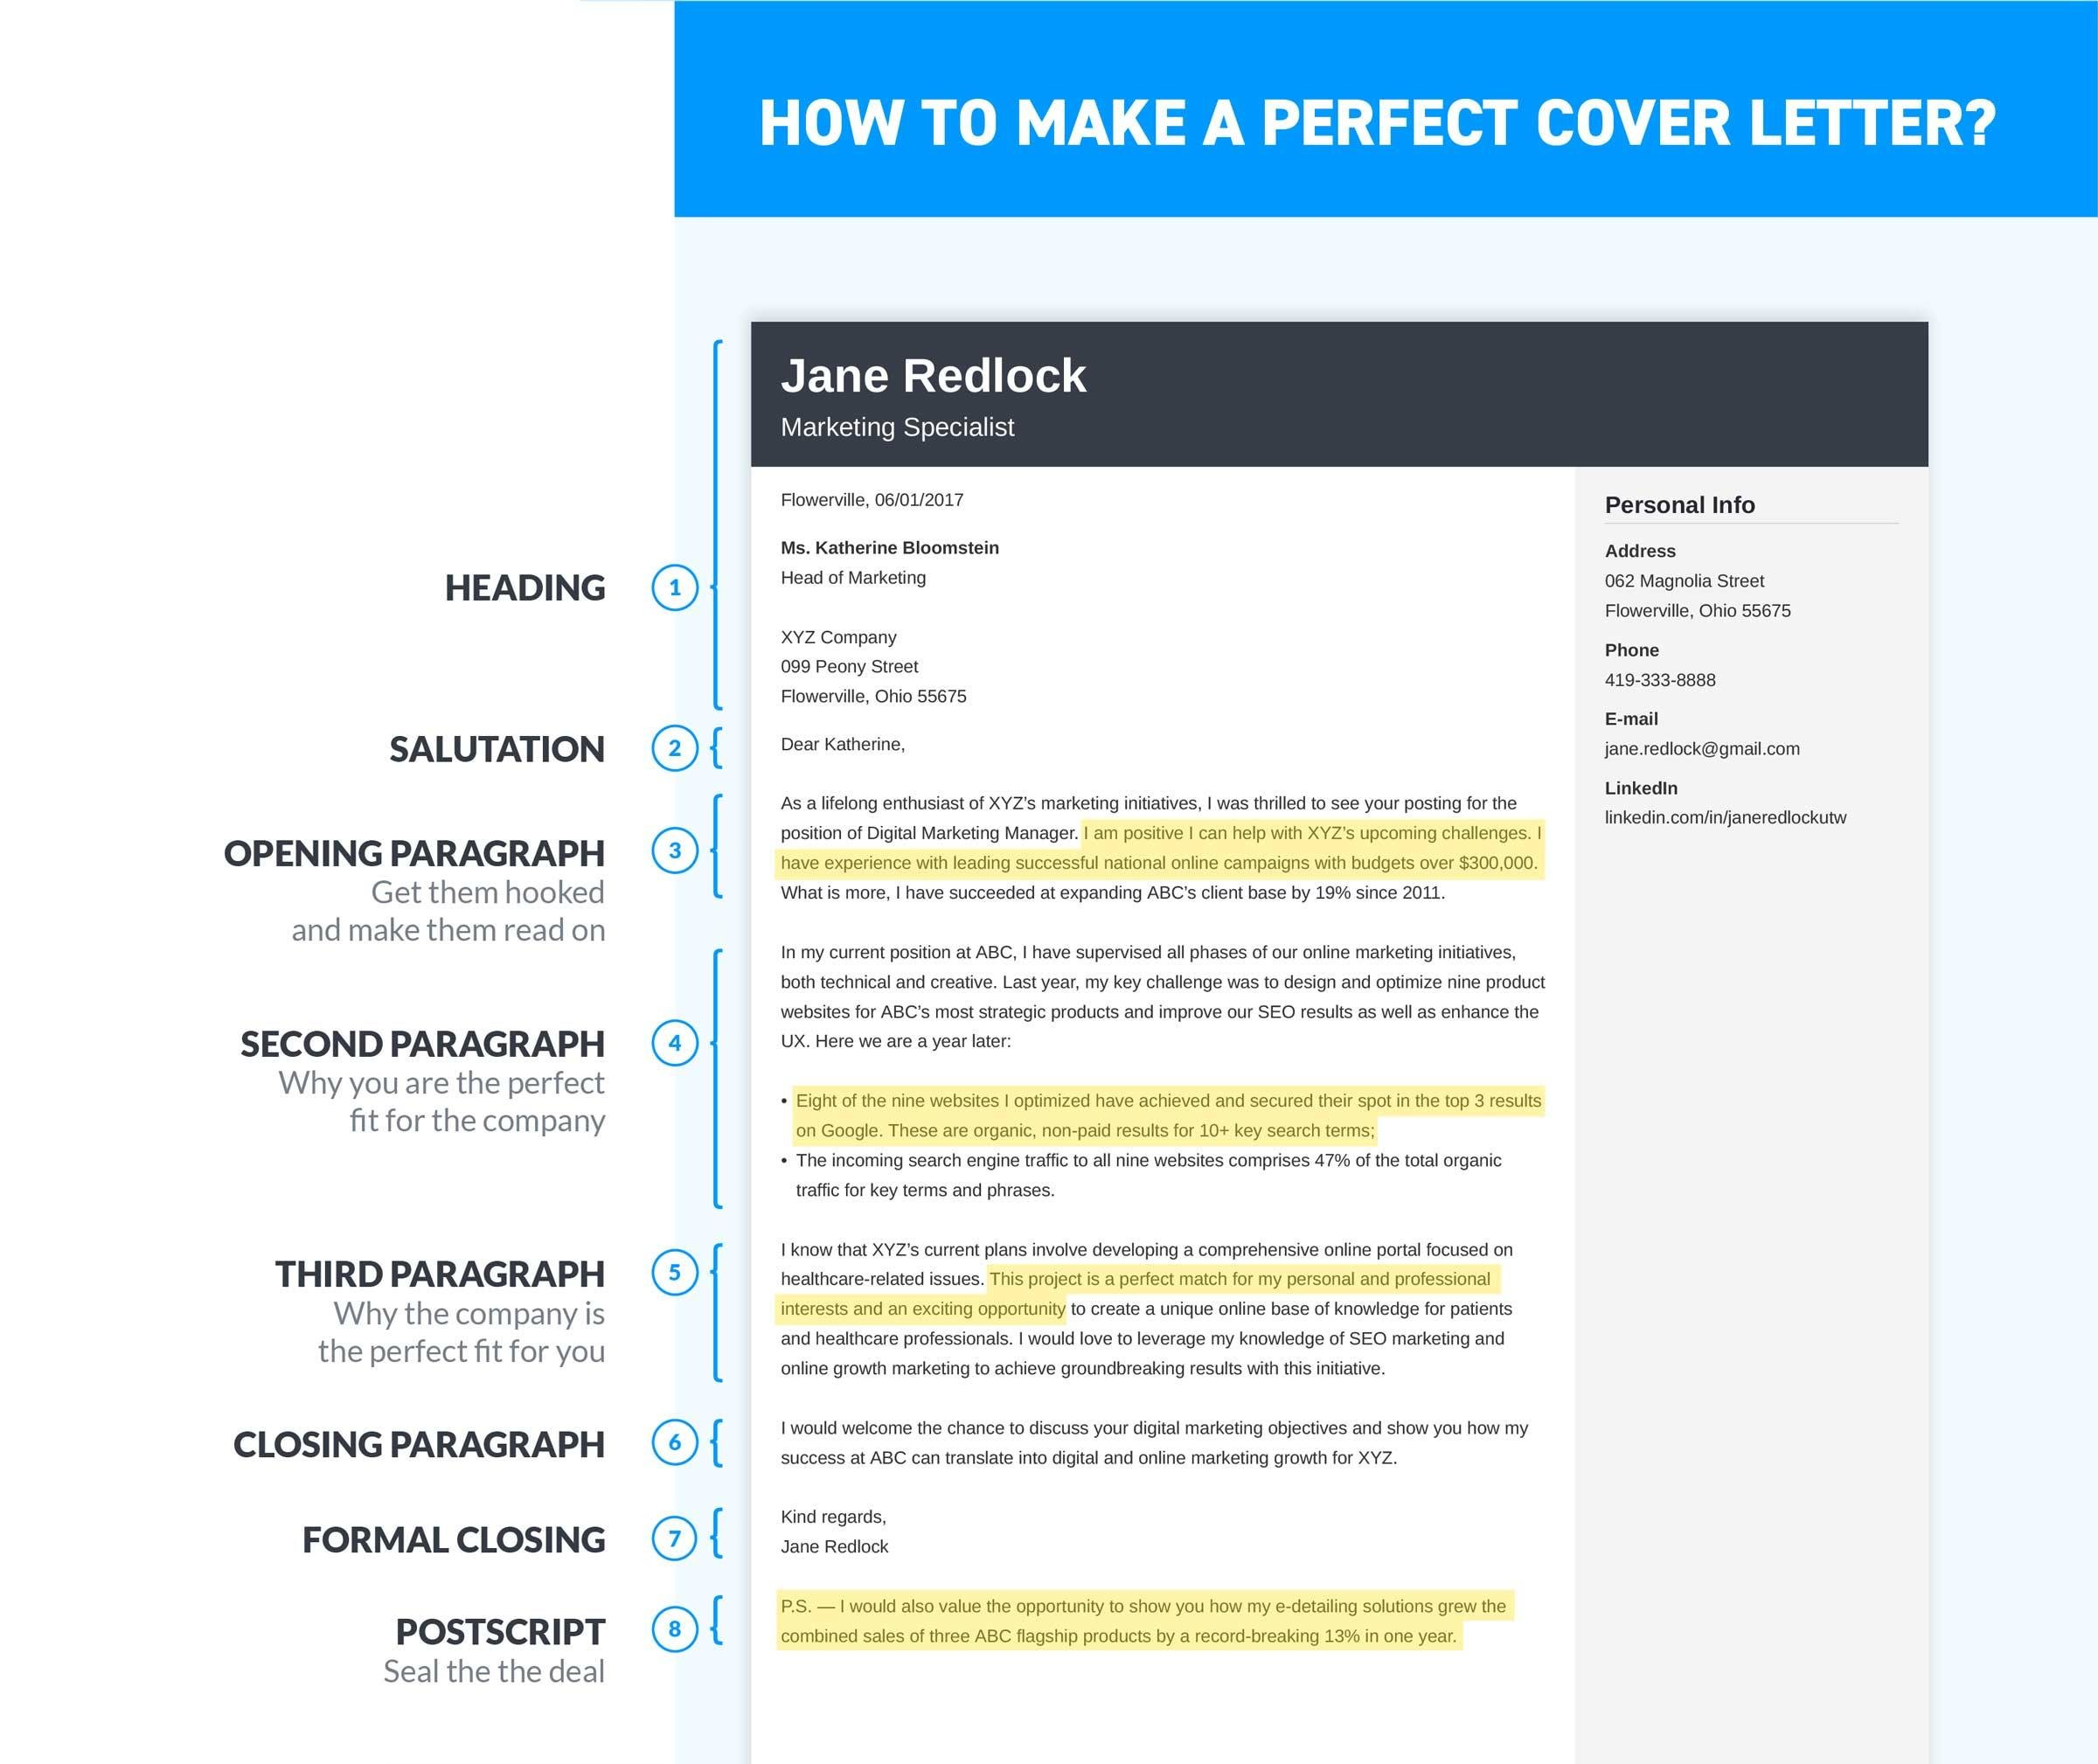 How To Make A Perfect Cover Letter Infographic  Help Writing A Cover Letter